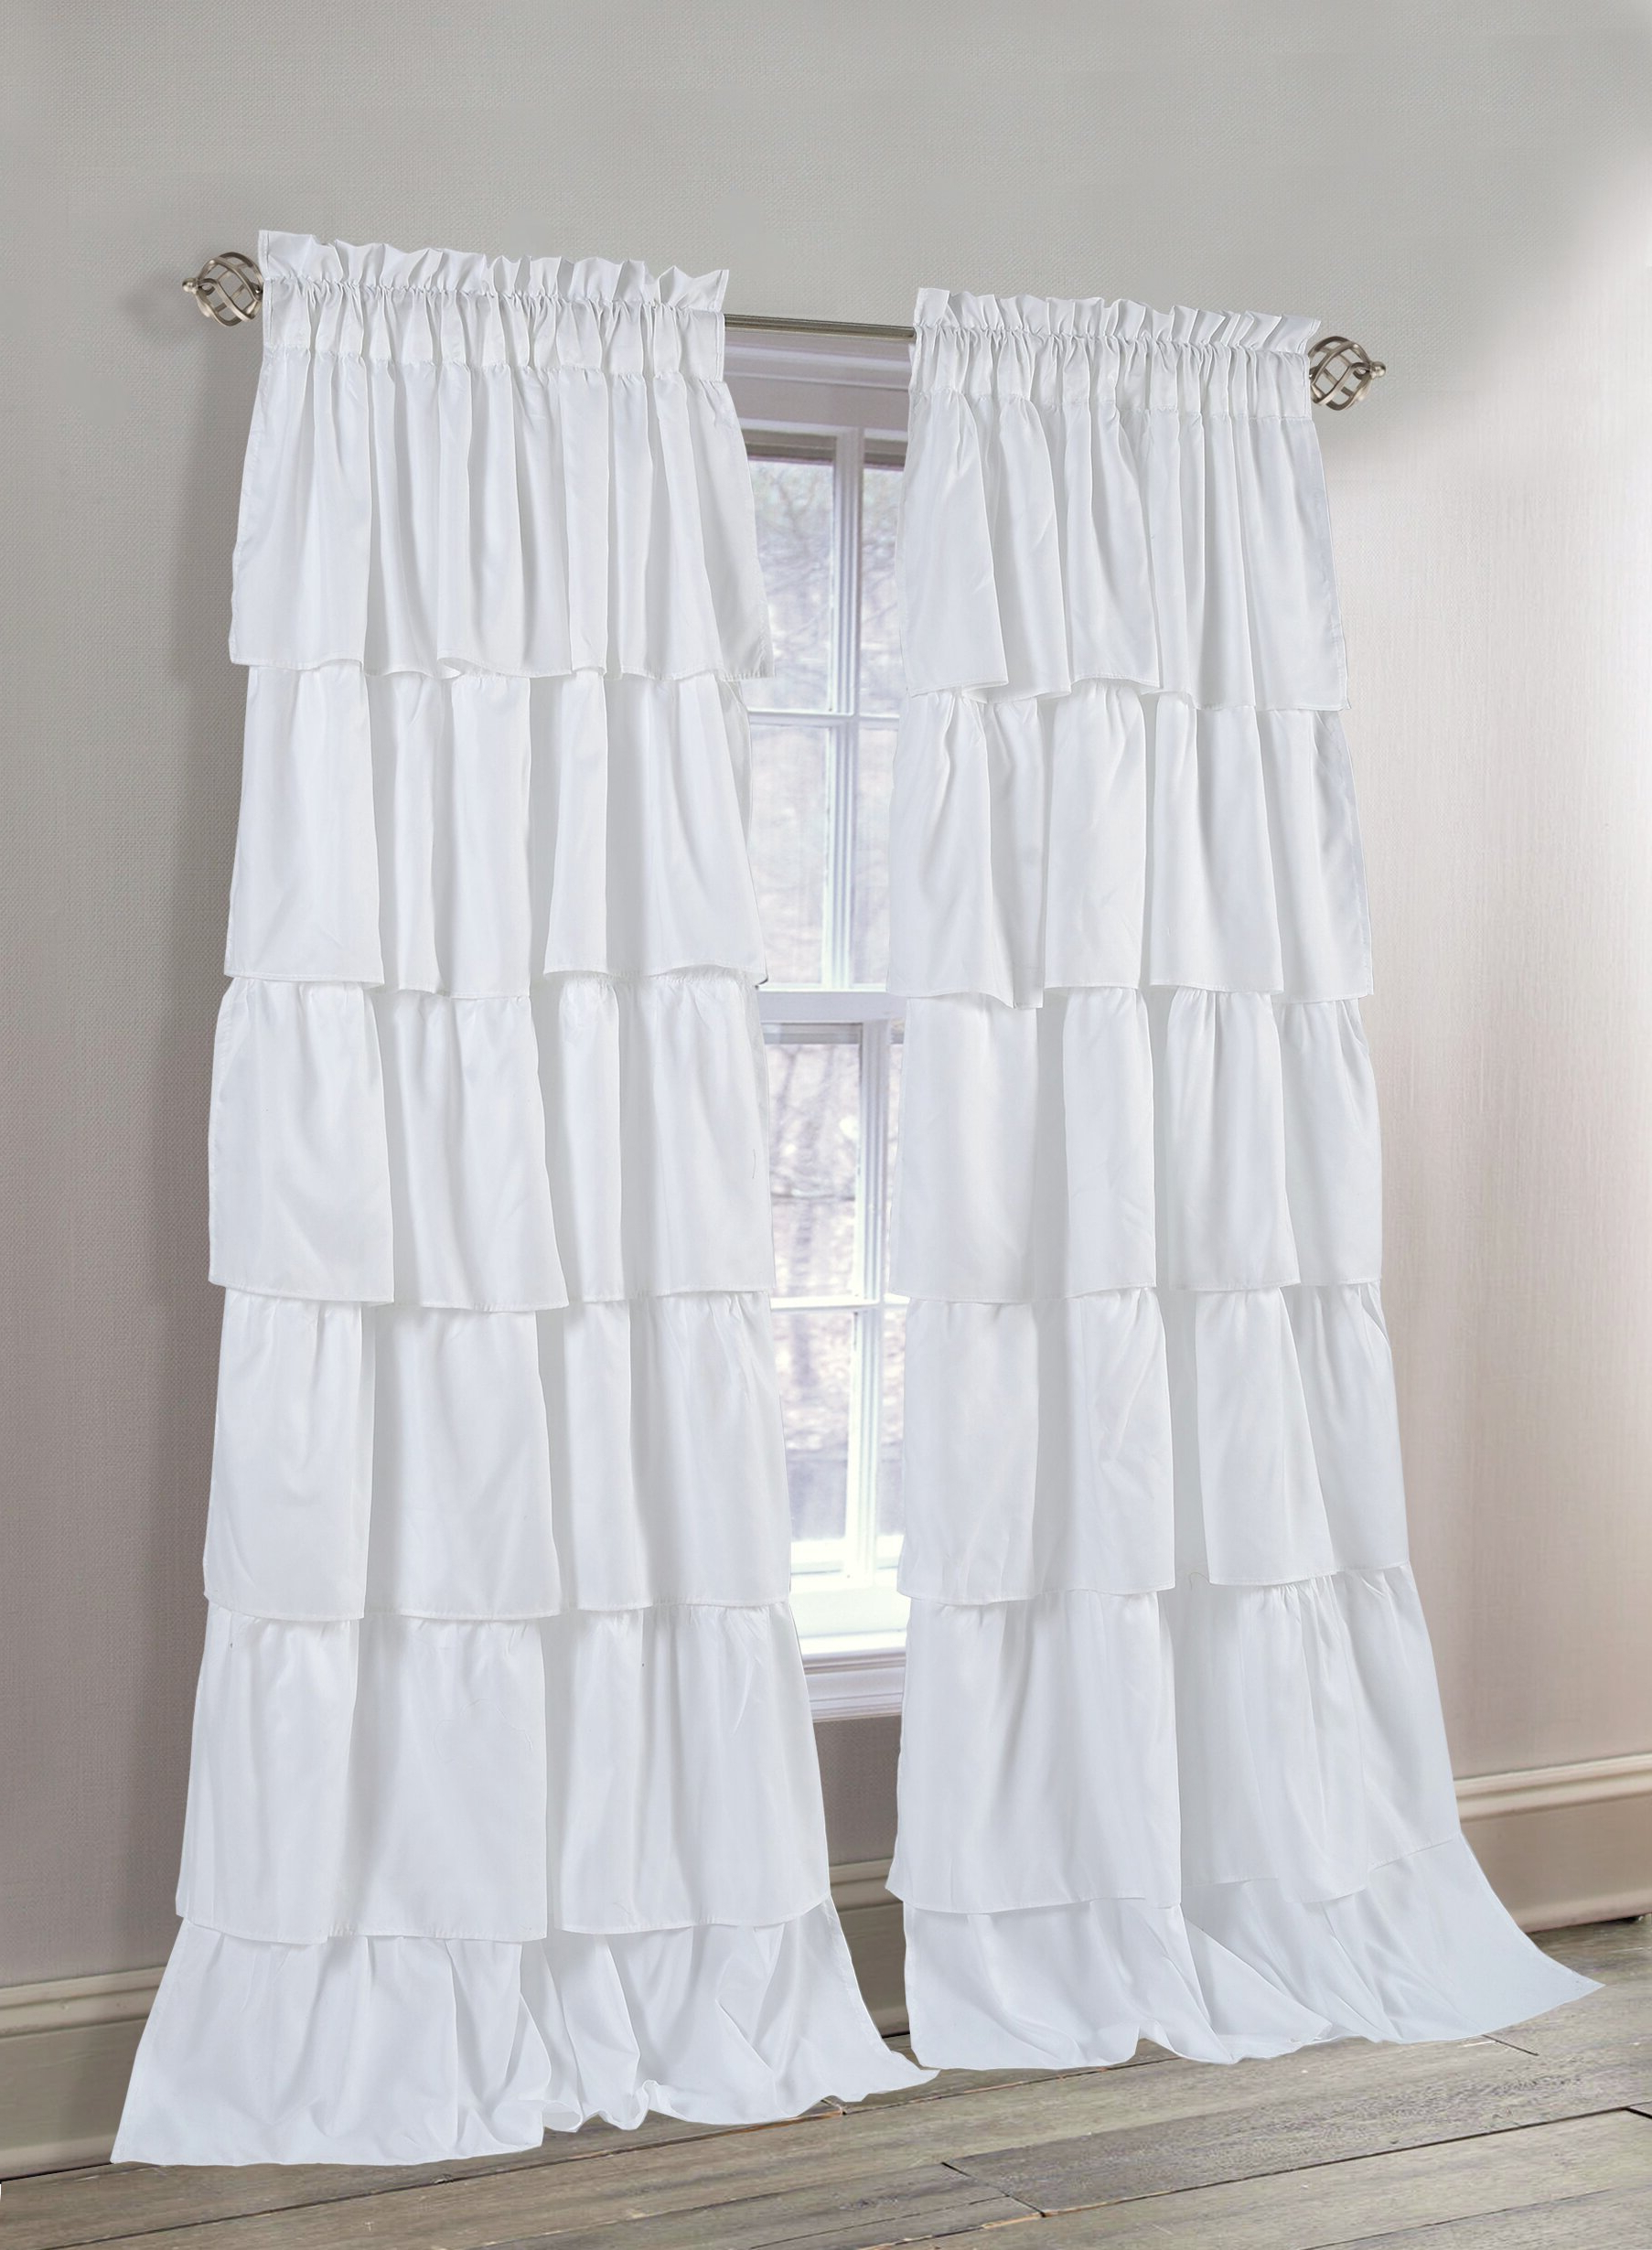 Luxury Collection Cranston Sheer Curtain Panel Pairs With Regard To Best And Newest Azariah Solid Semi Sheer Rod Pocket Curtain Panels (View 14 of 20)